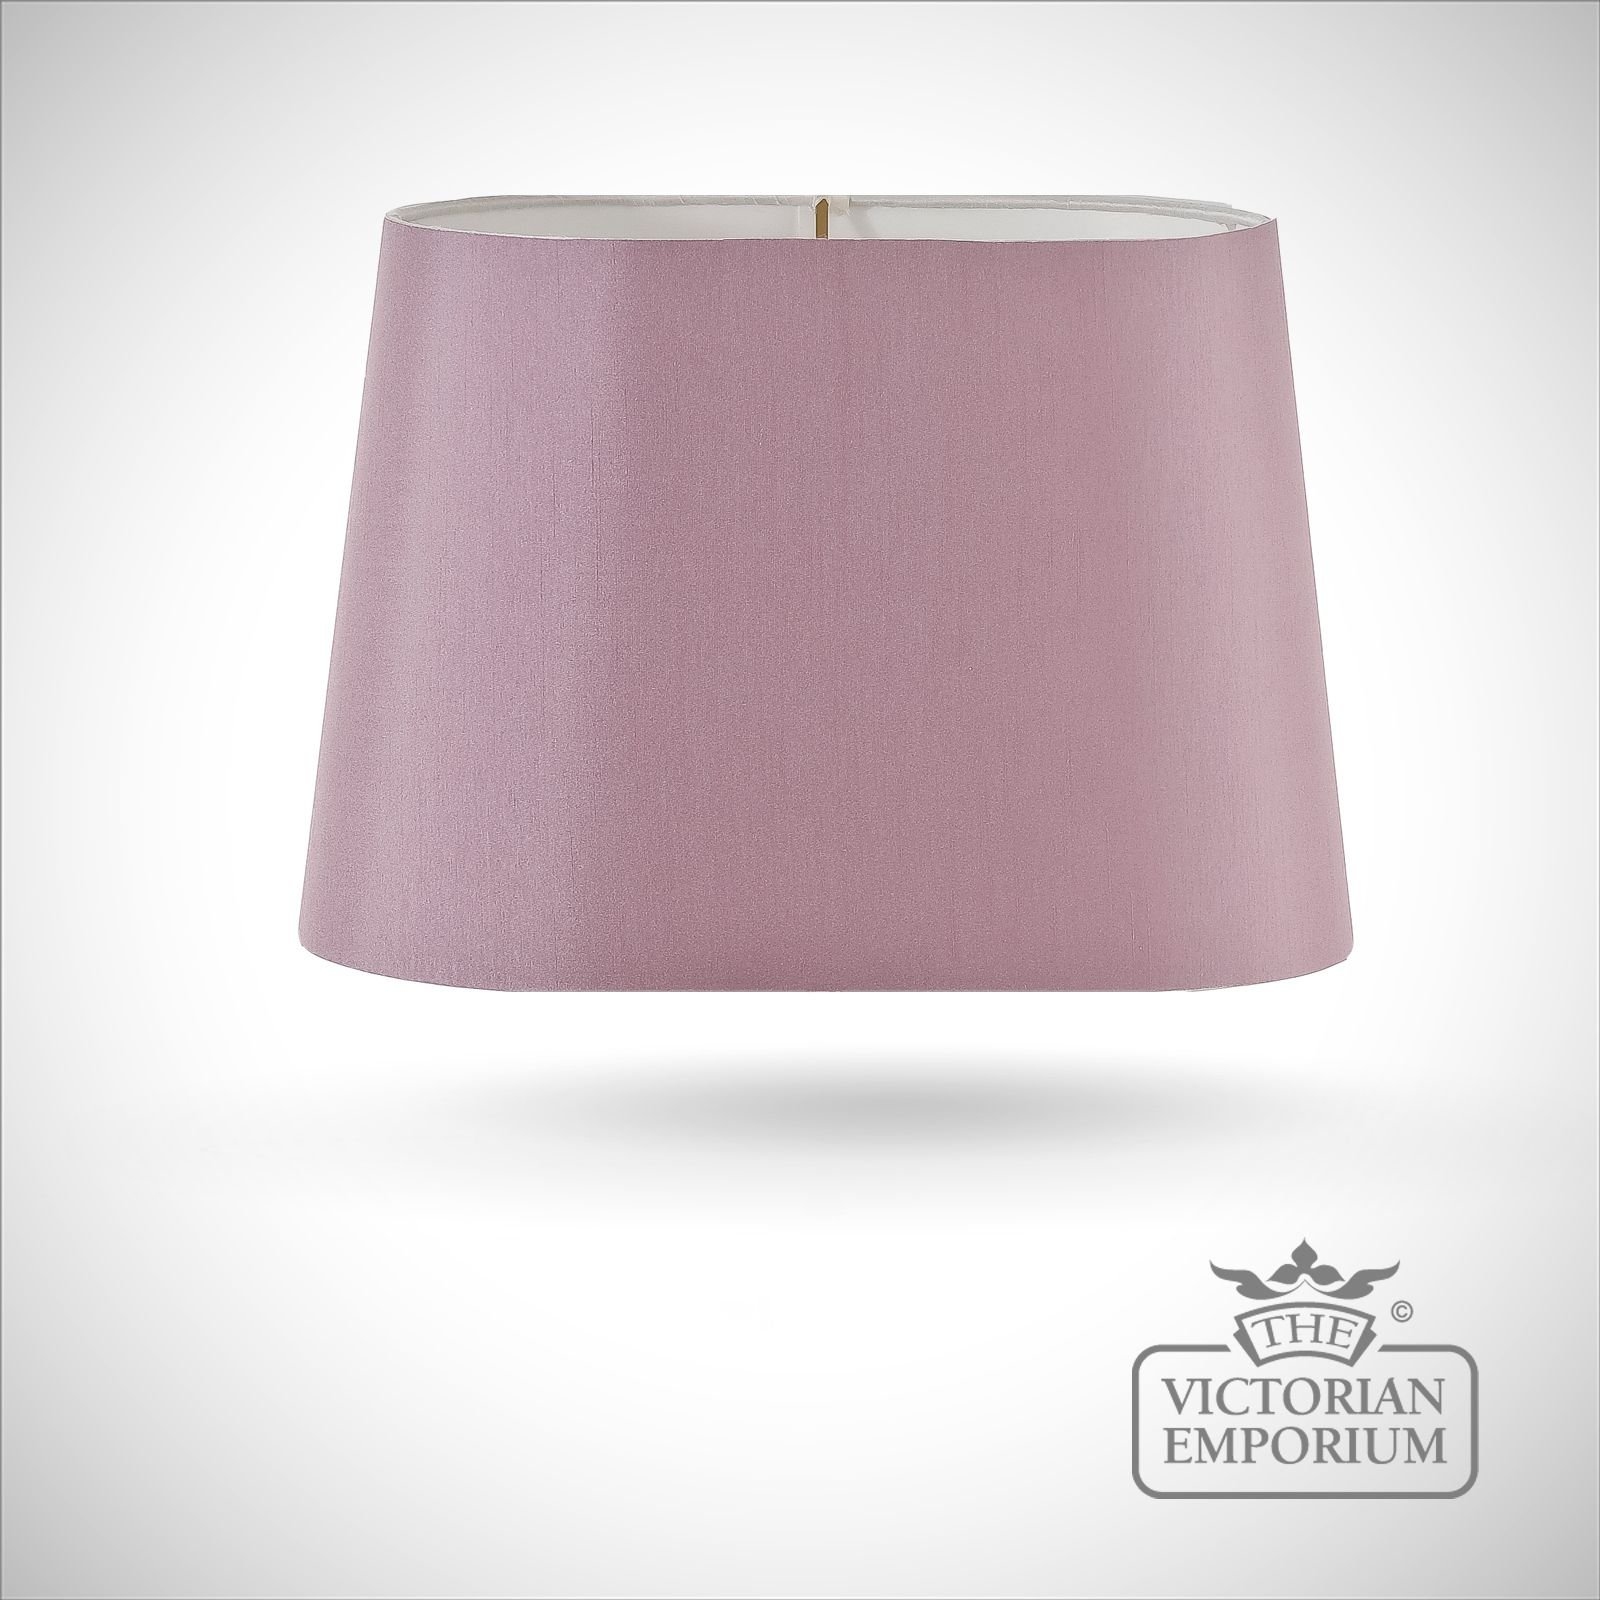 Tapered Oval Lamp Shade In Amethyst 39cm Lamp Shades